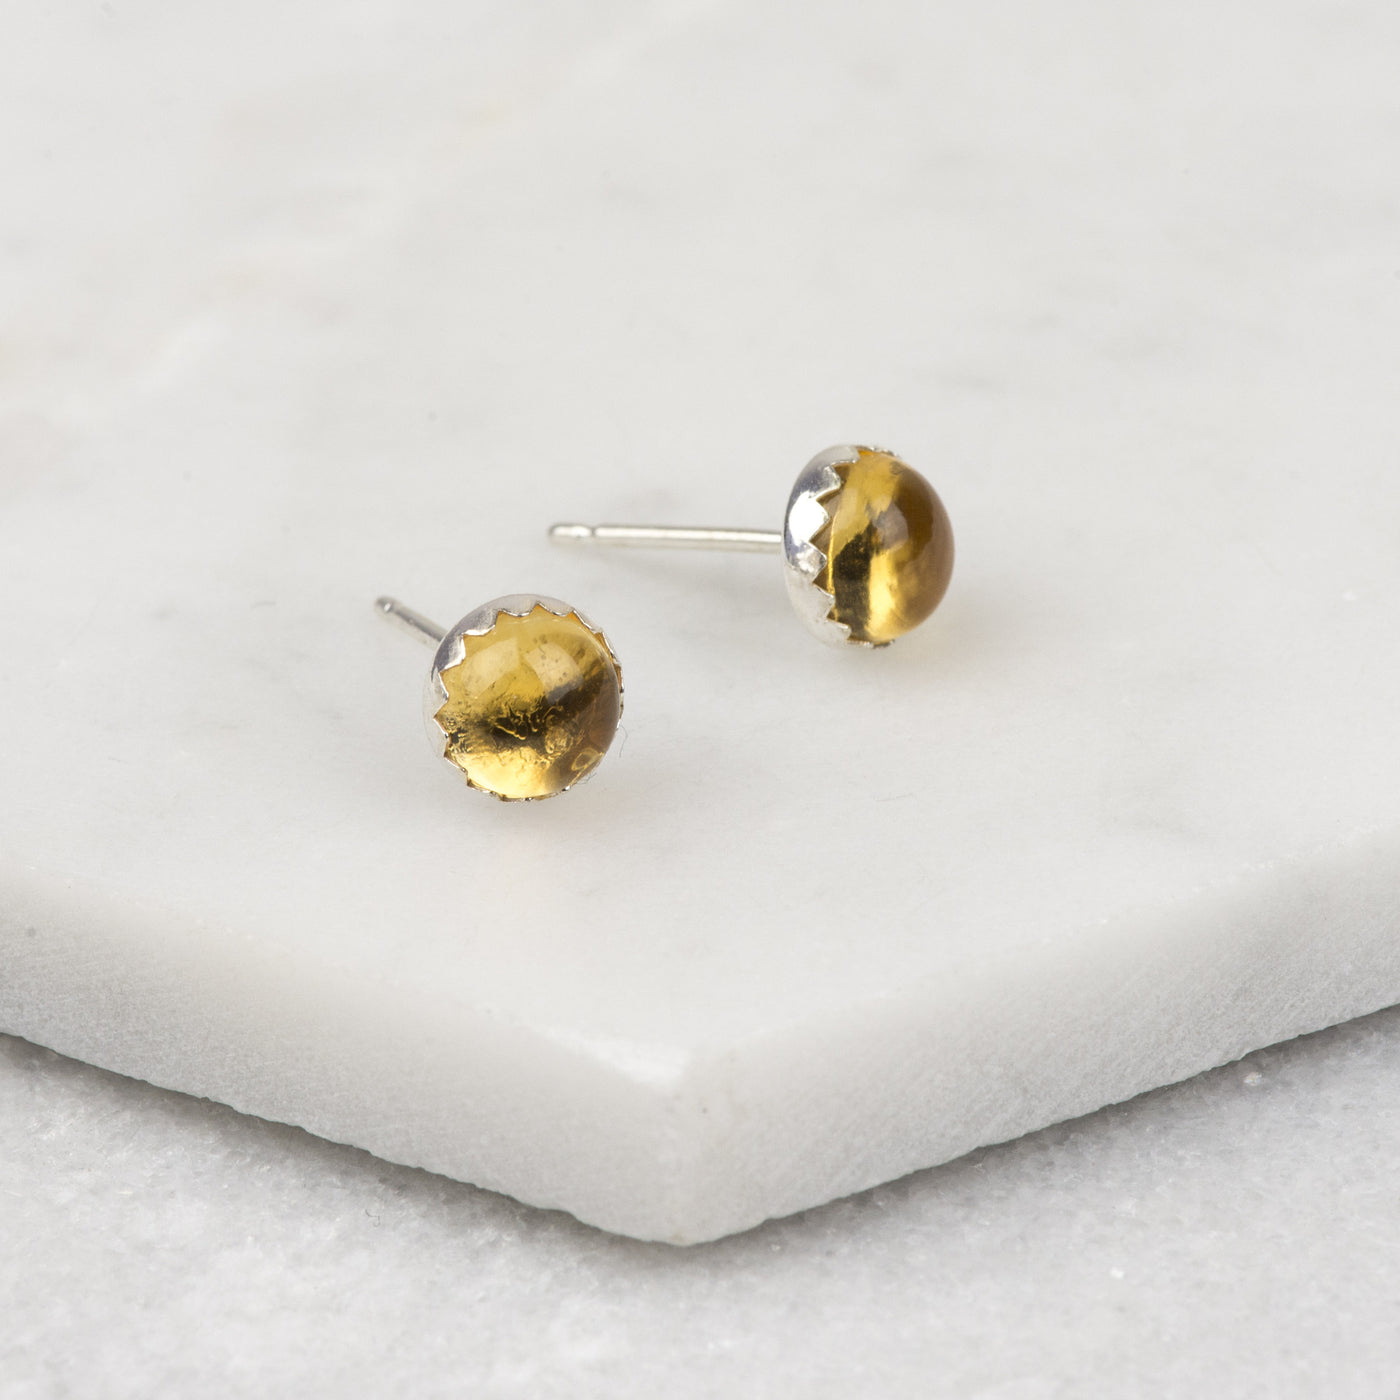 Citrine - Handmade Sterling Silver Gemstone Earrings